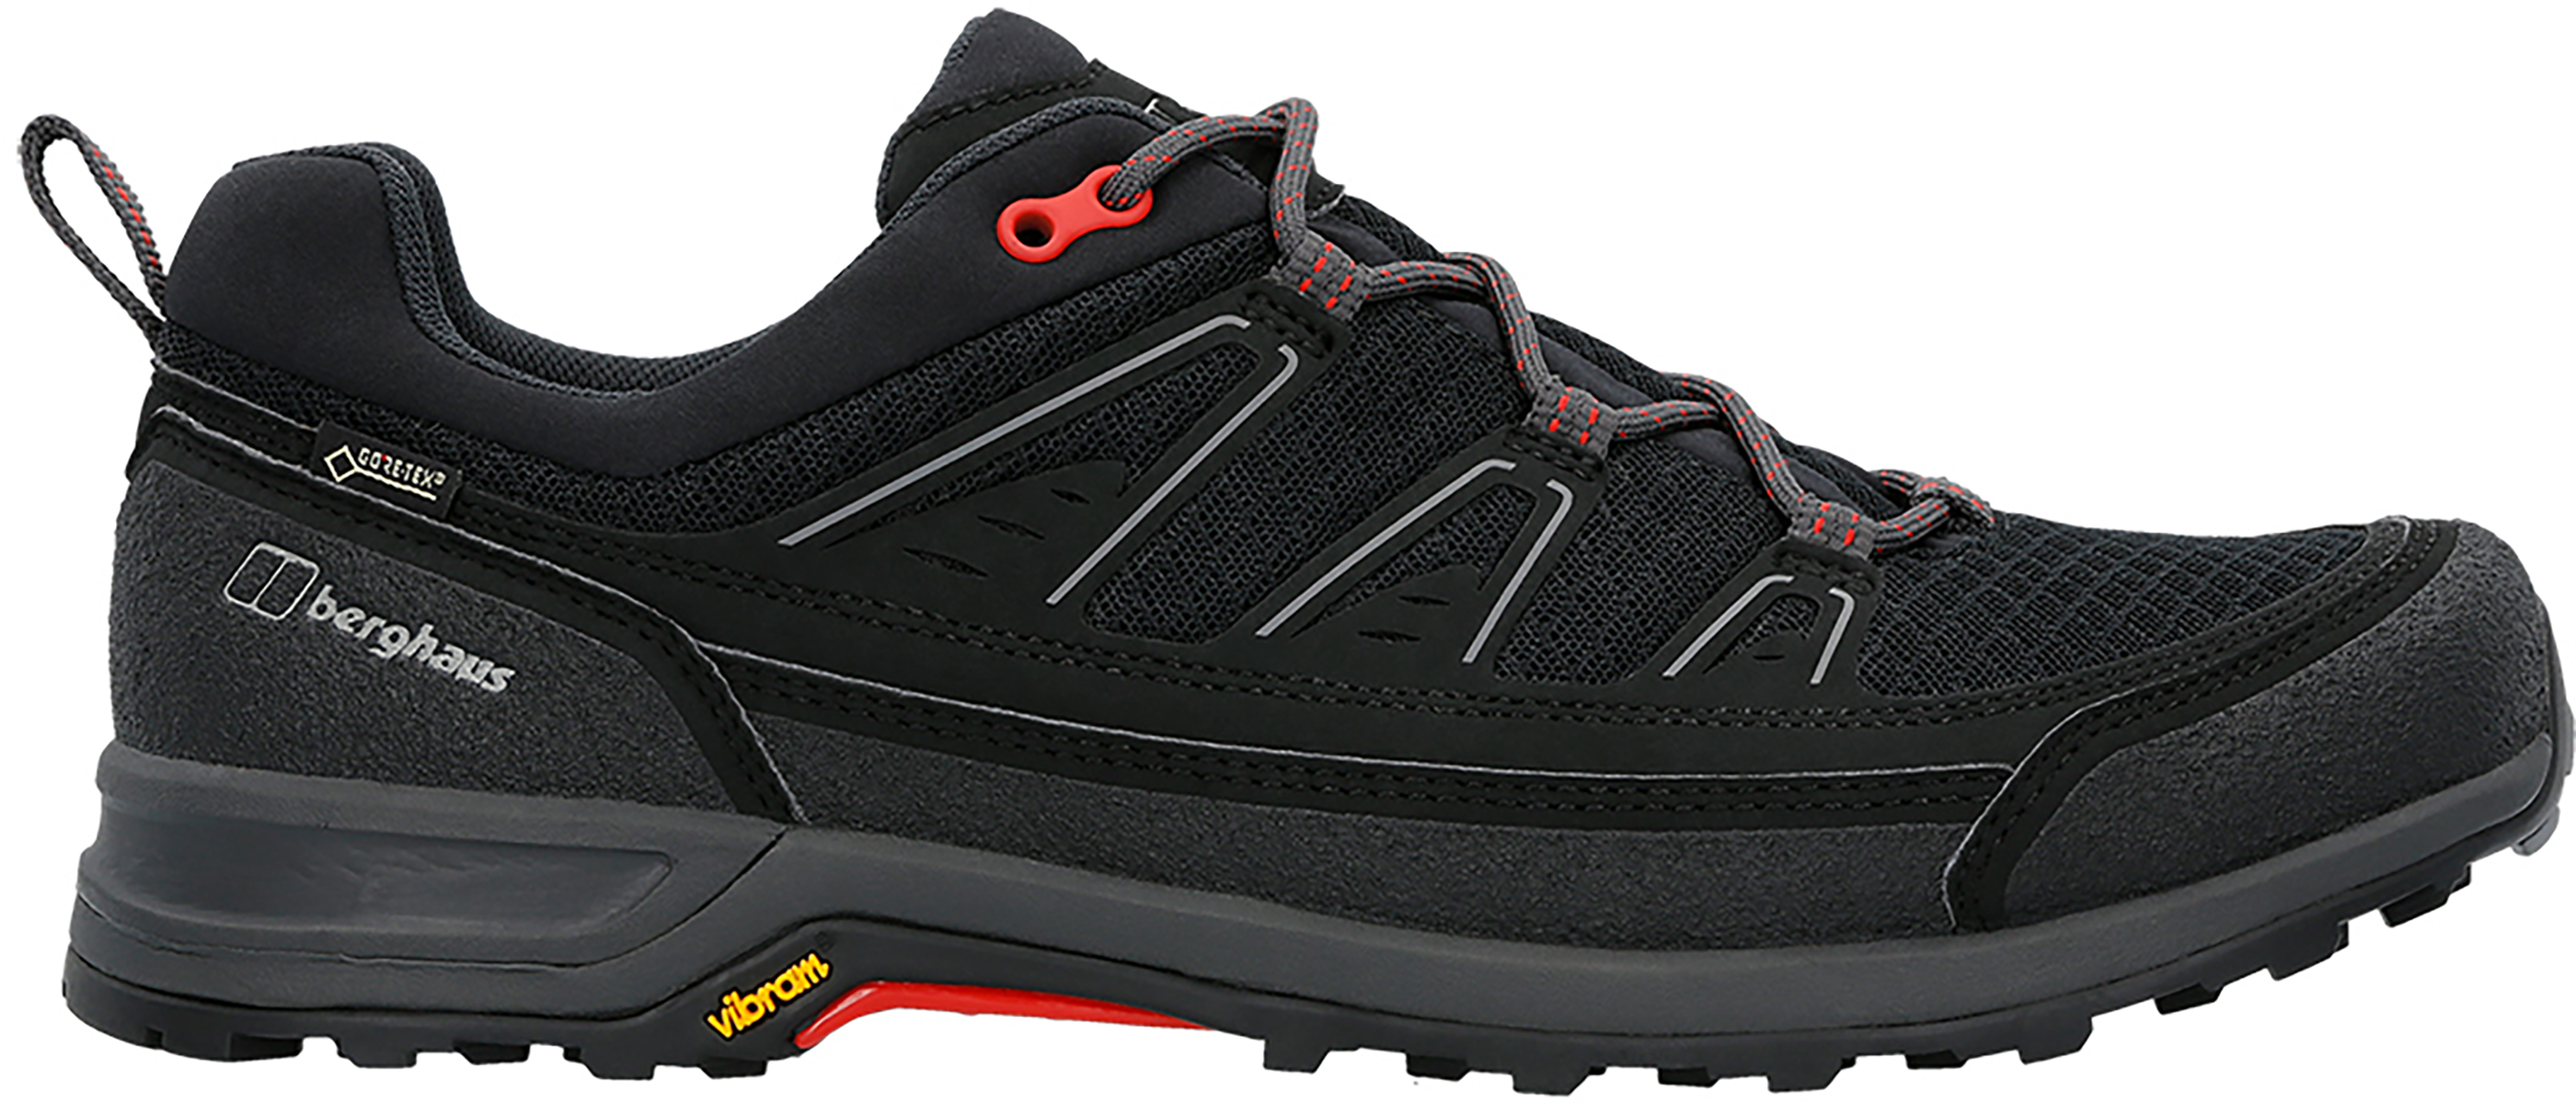 Berghaus Explorer FT Active Gore-Tex® Shoes | Shoes and overlays